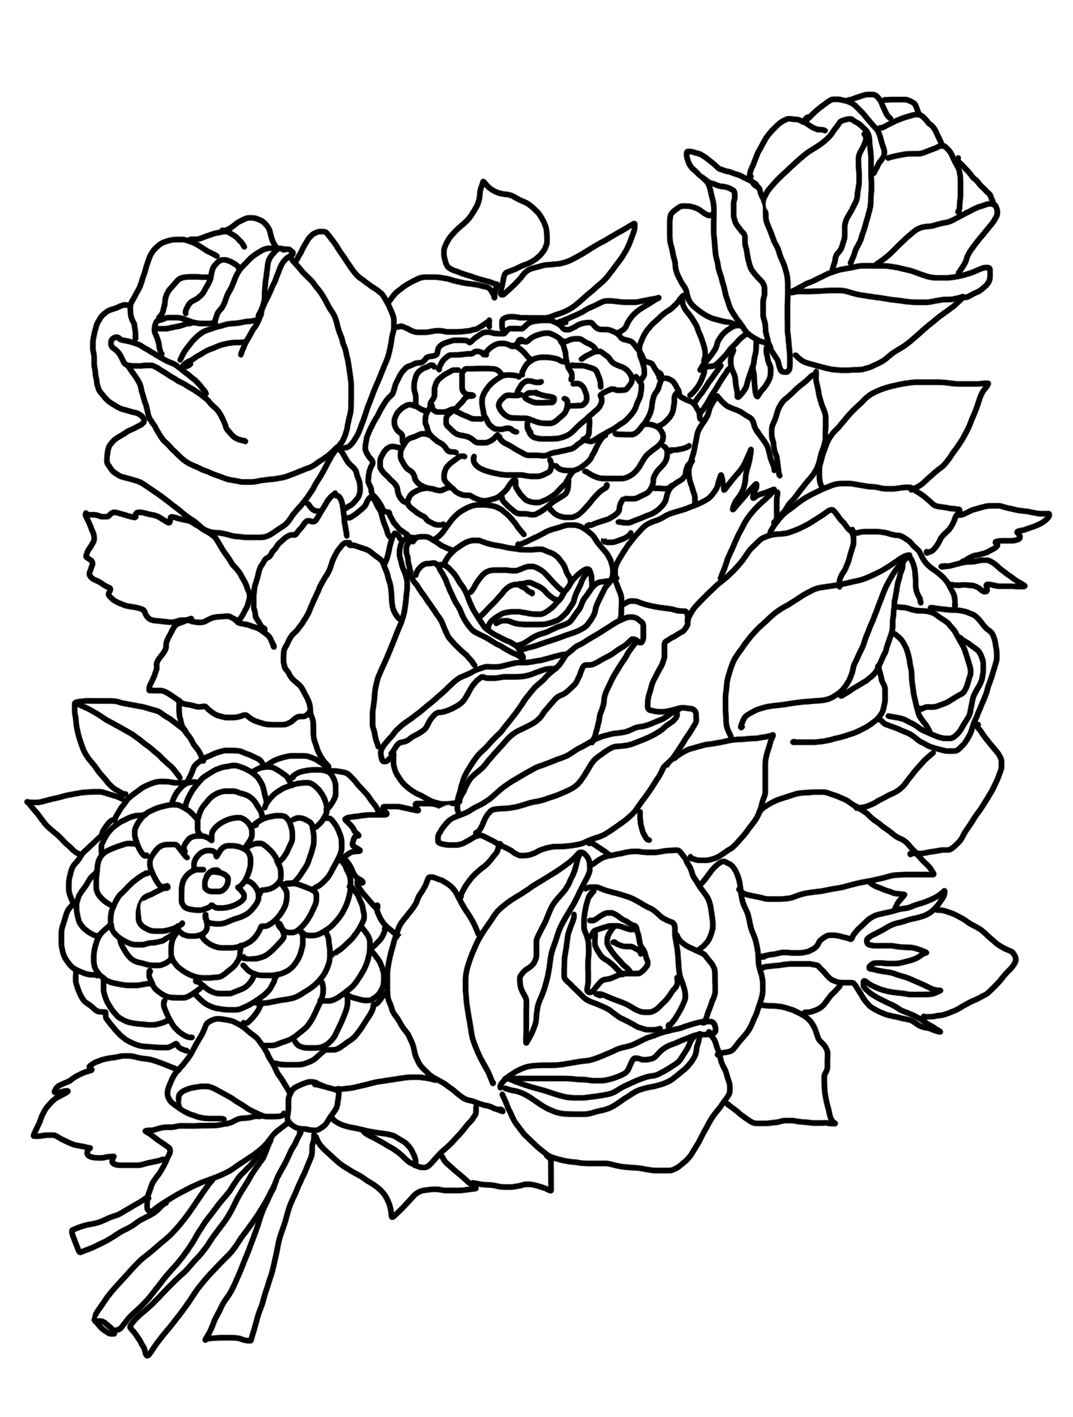 bouquet of roses coloring pages bouquet of roses coloring page free printable coloring pages of bouquet coloring pages roses